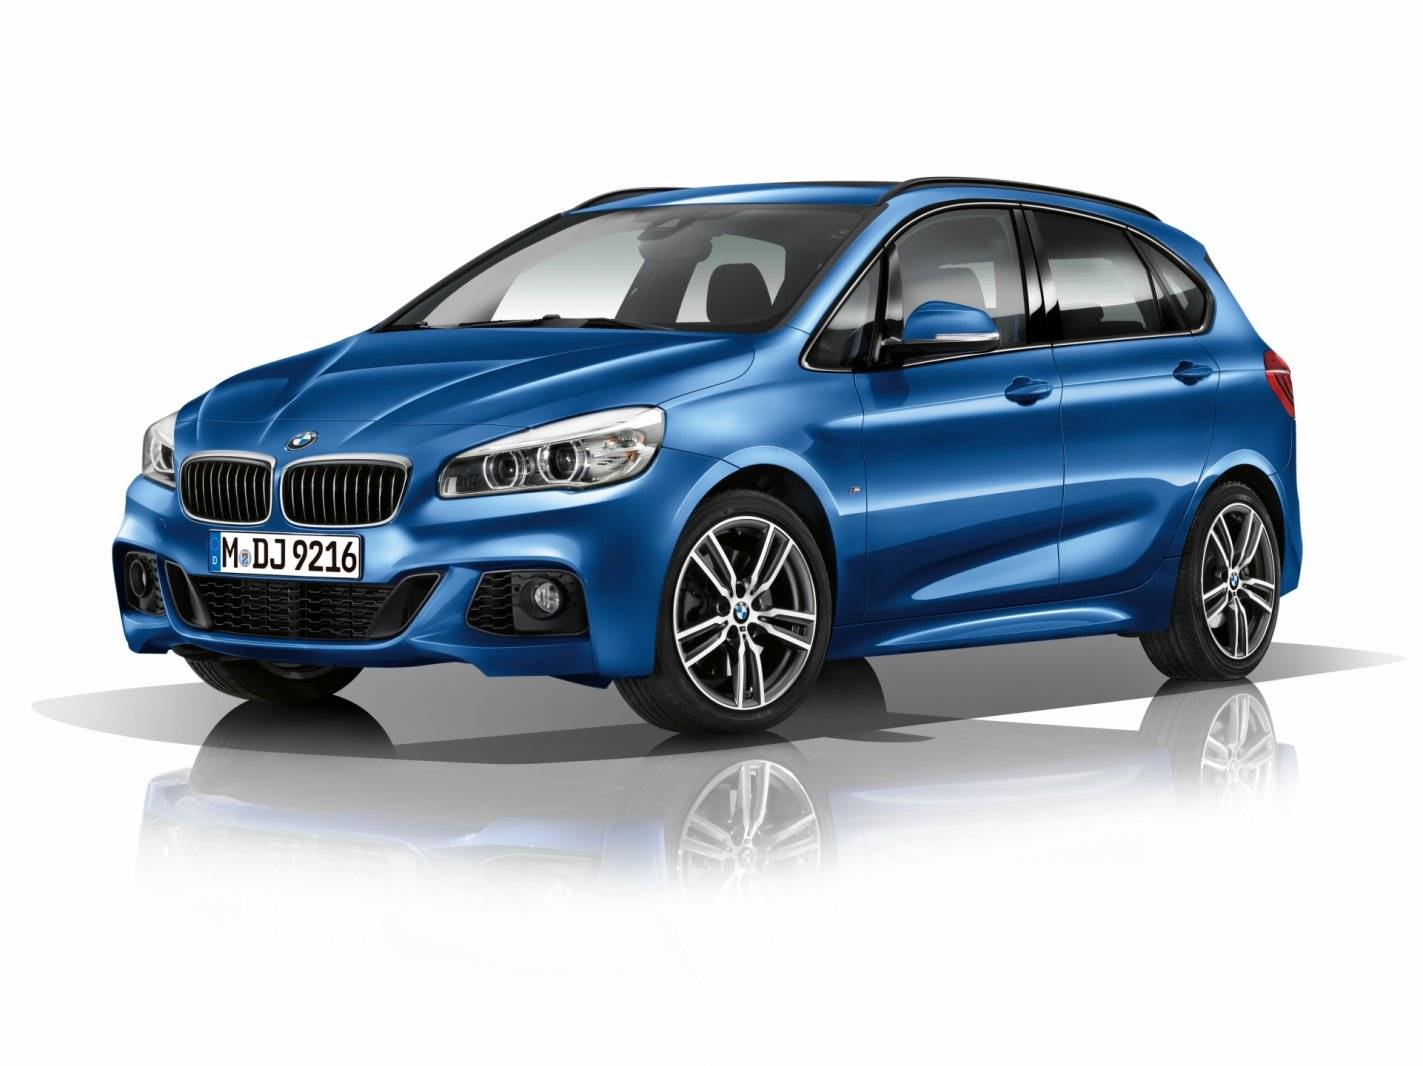 trainingspak voor bmw 2 serie active tourer autonieuws. Black Bedroom Furniture Sets. Home Design Ideas